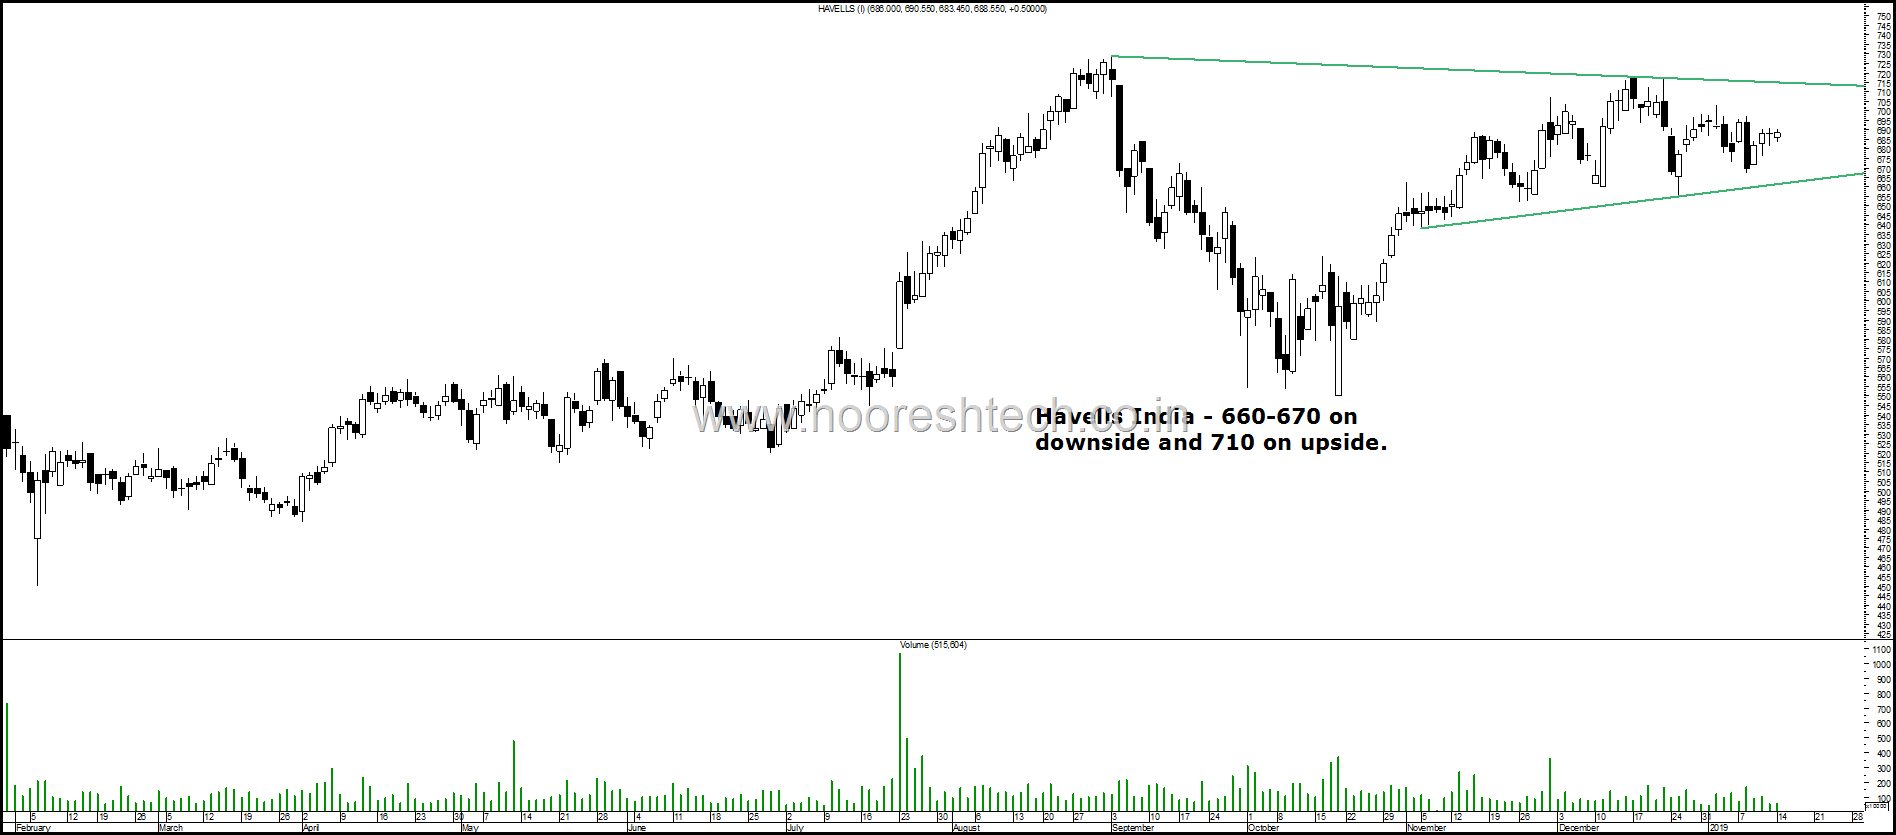 Havells break